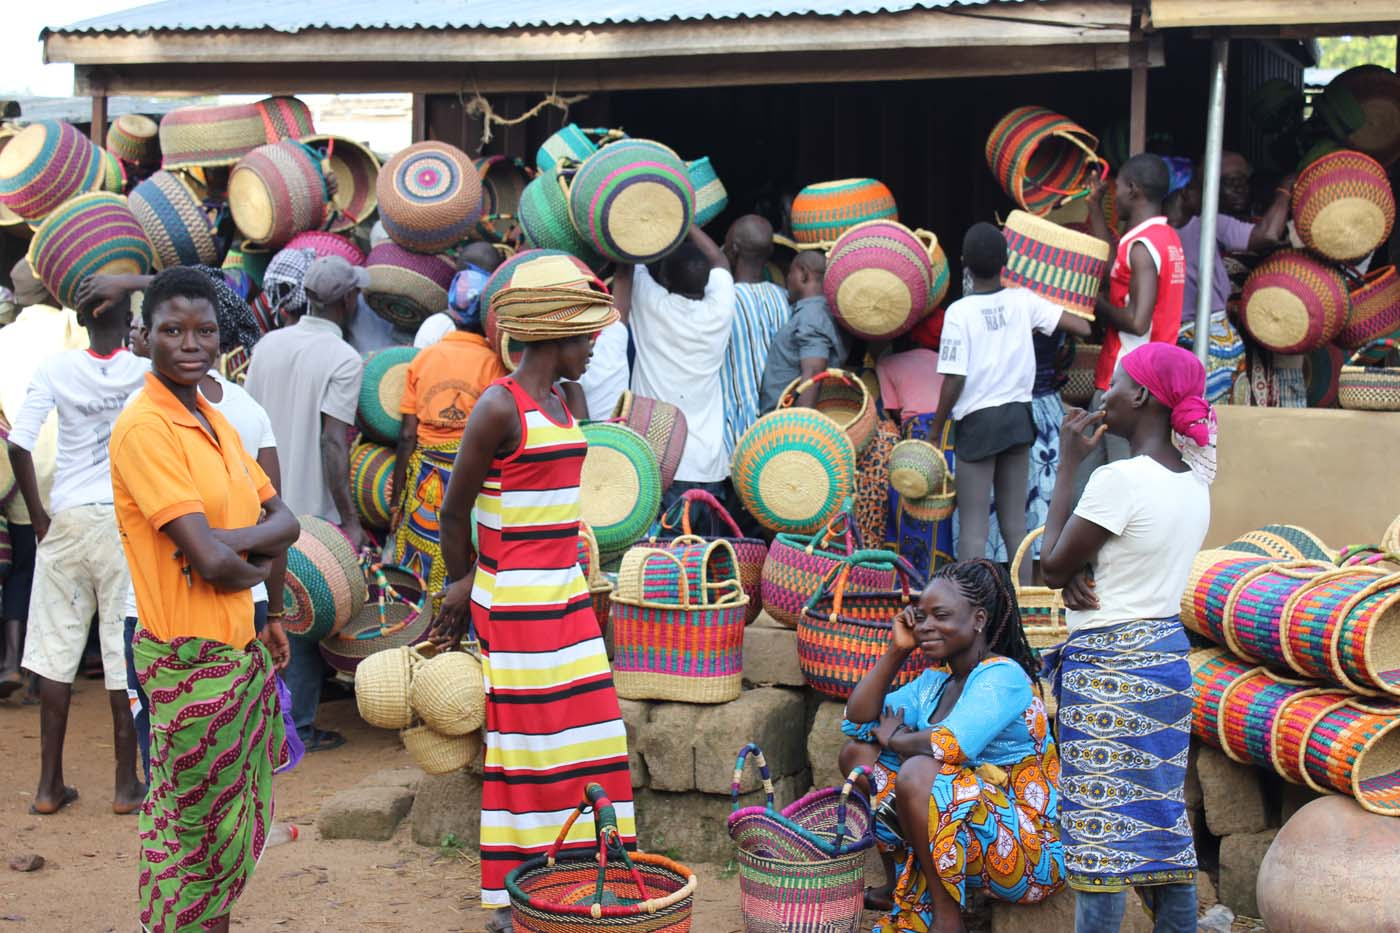 Colorful commotion at the market